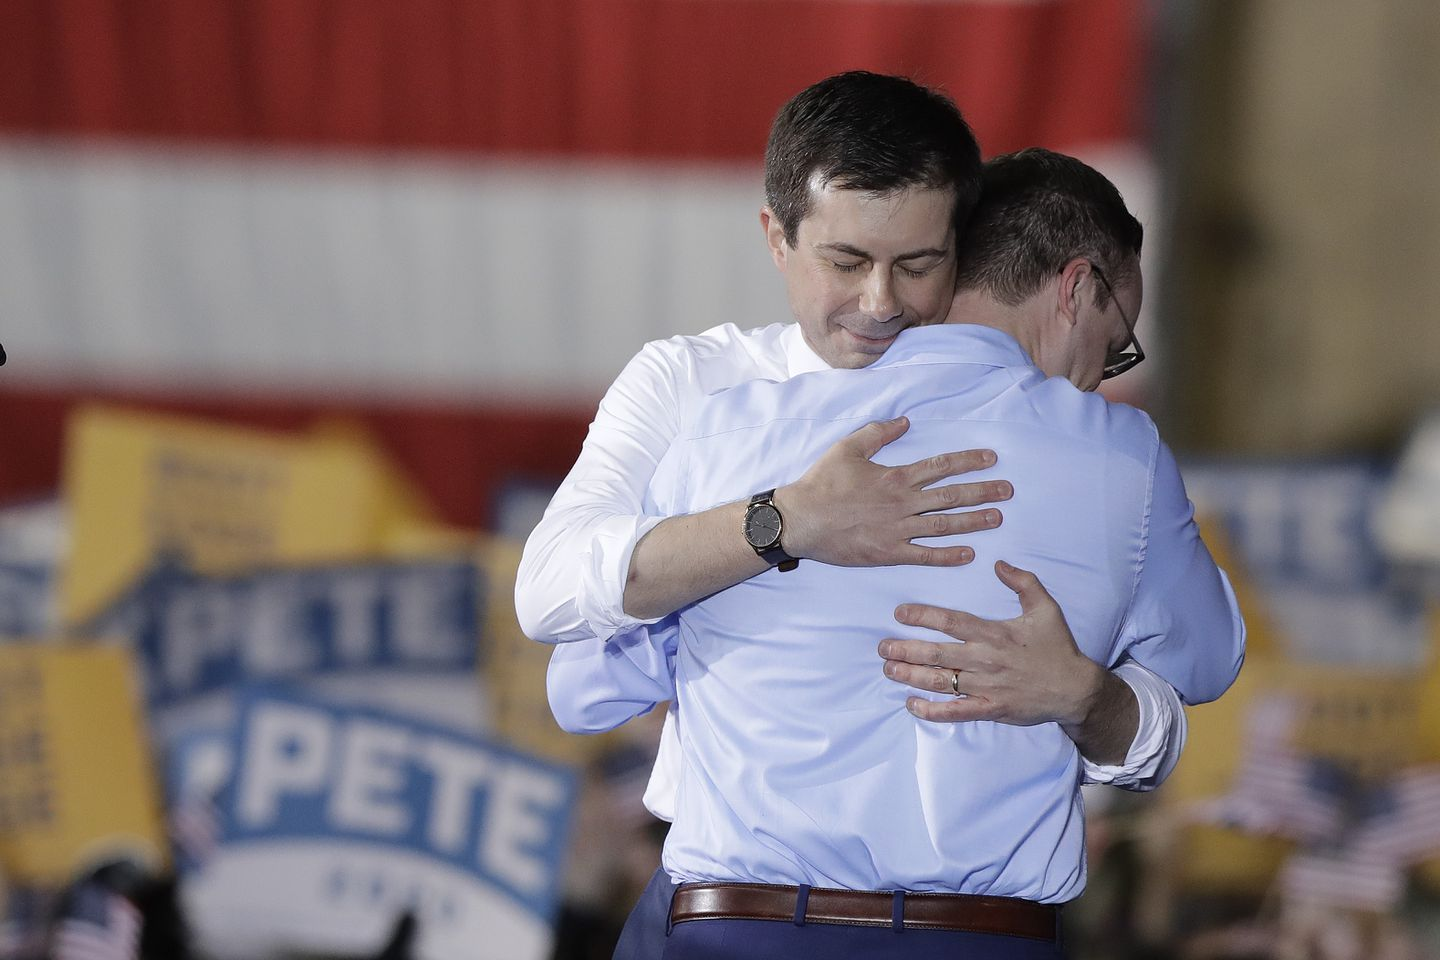 O'Rourke defends Buttigieg against anti-gay protesters in Texas